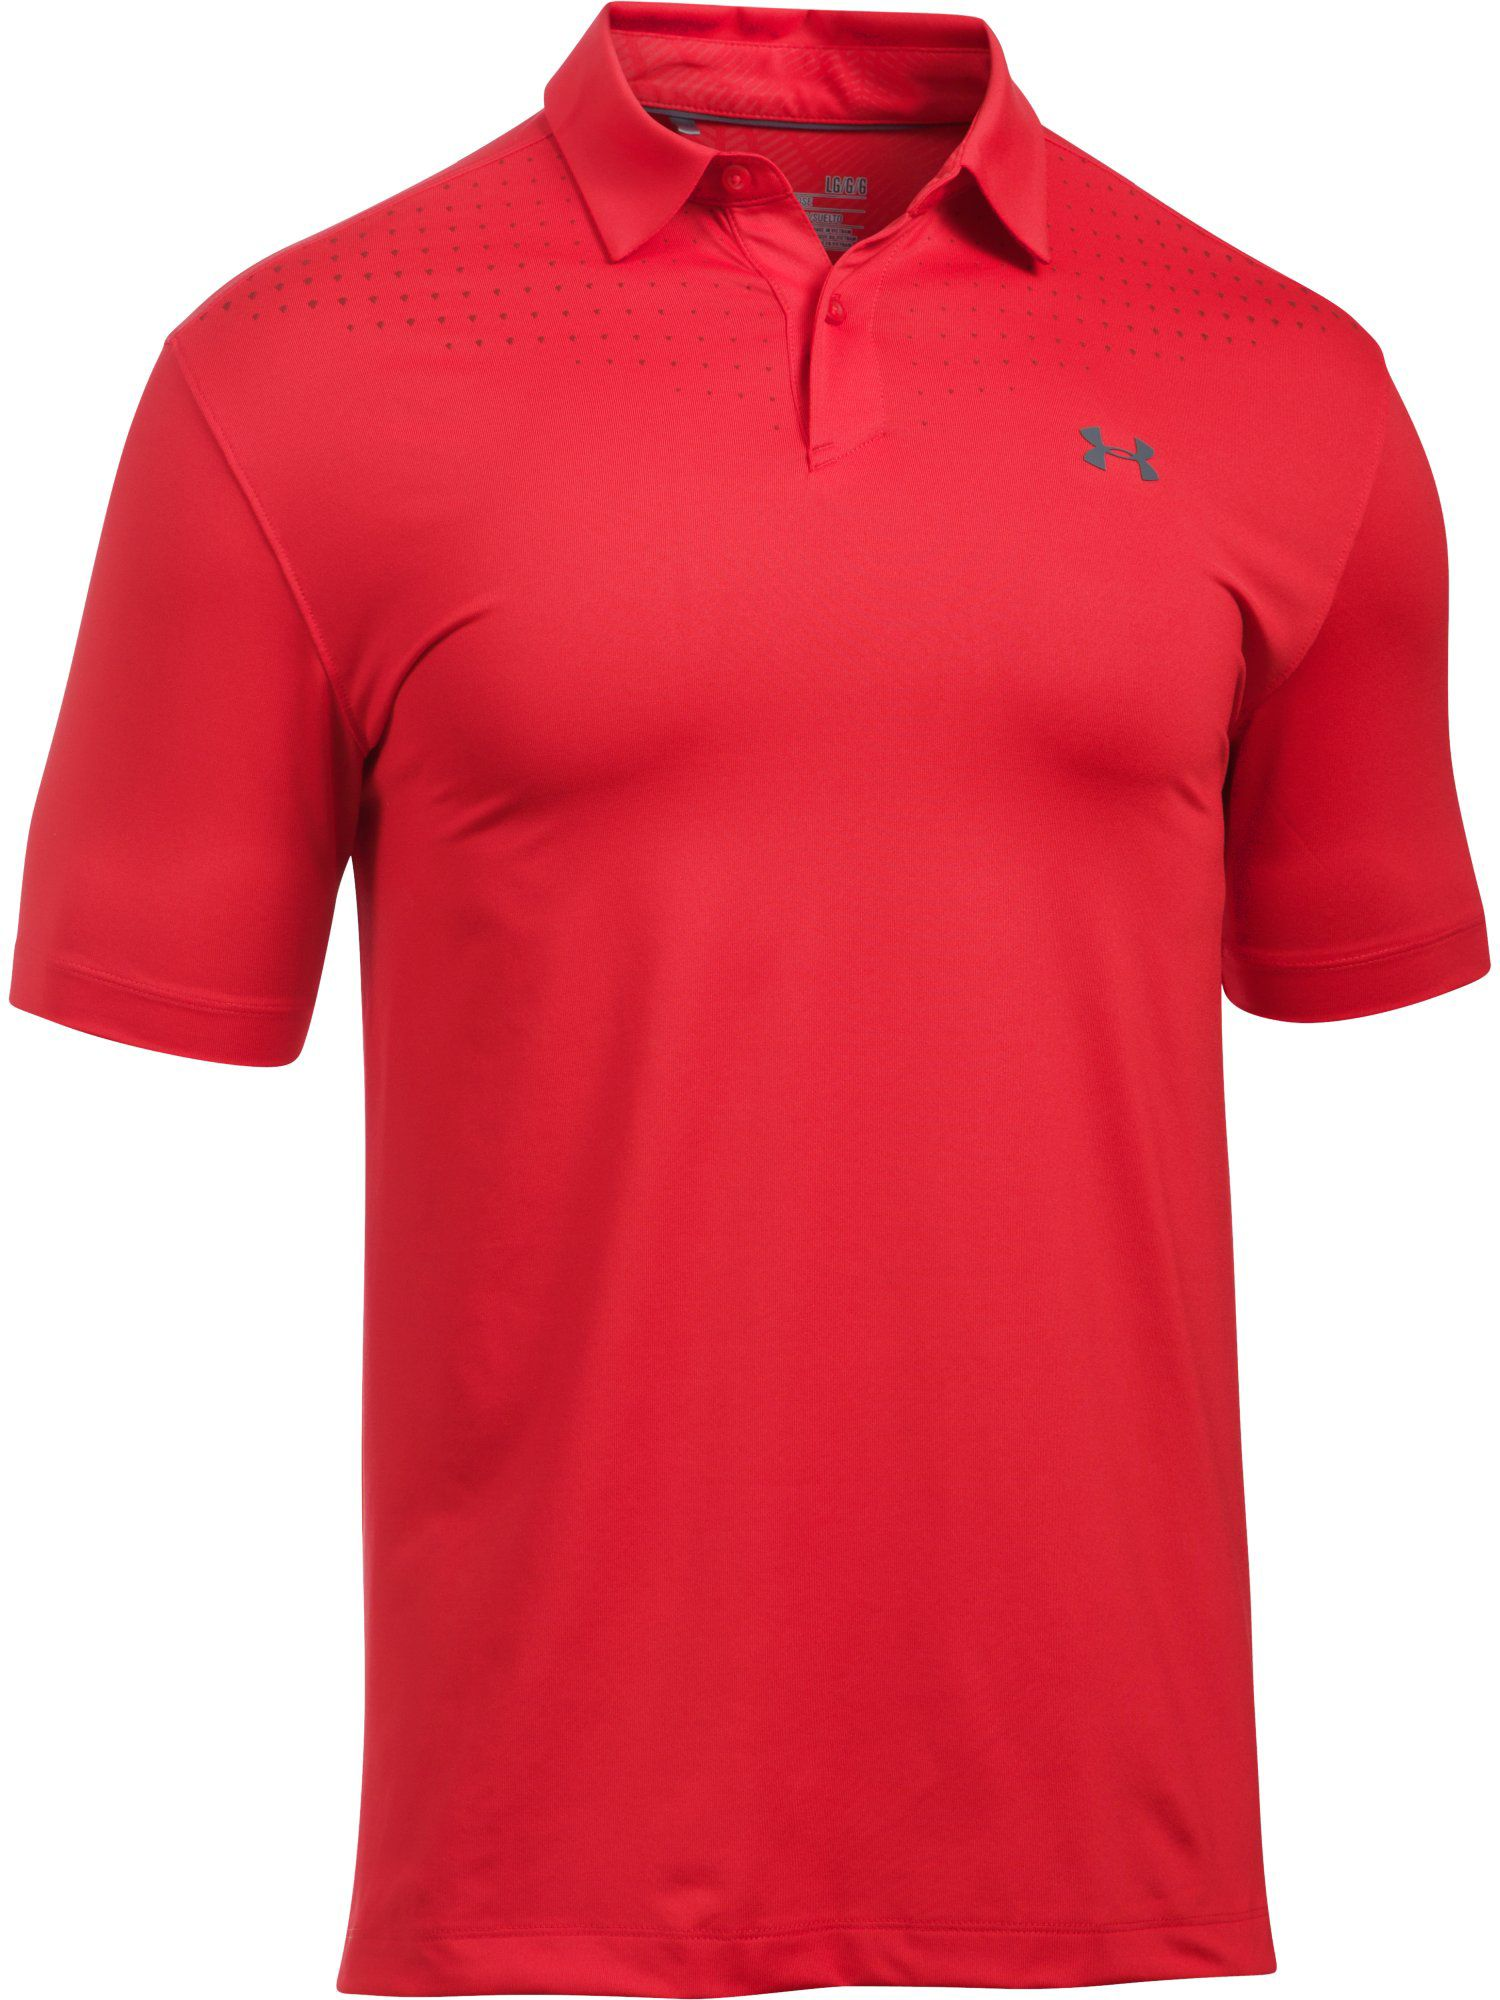 Men's Under Armour Coolswitch Ice Pick Polo, Red